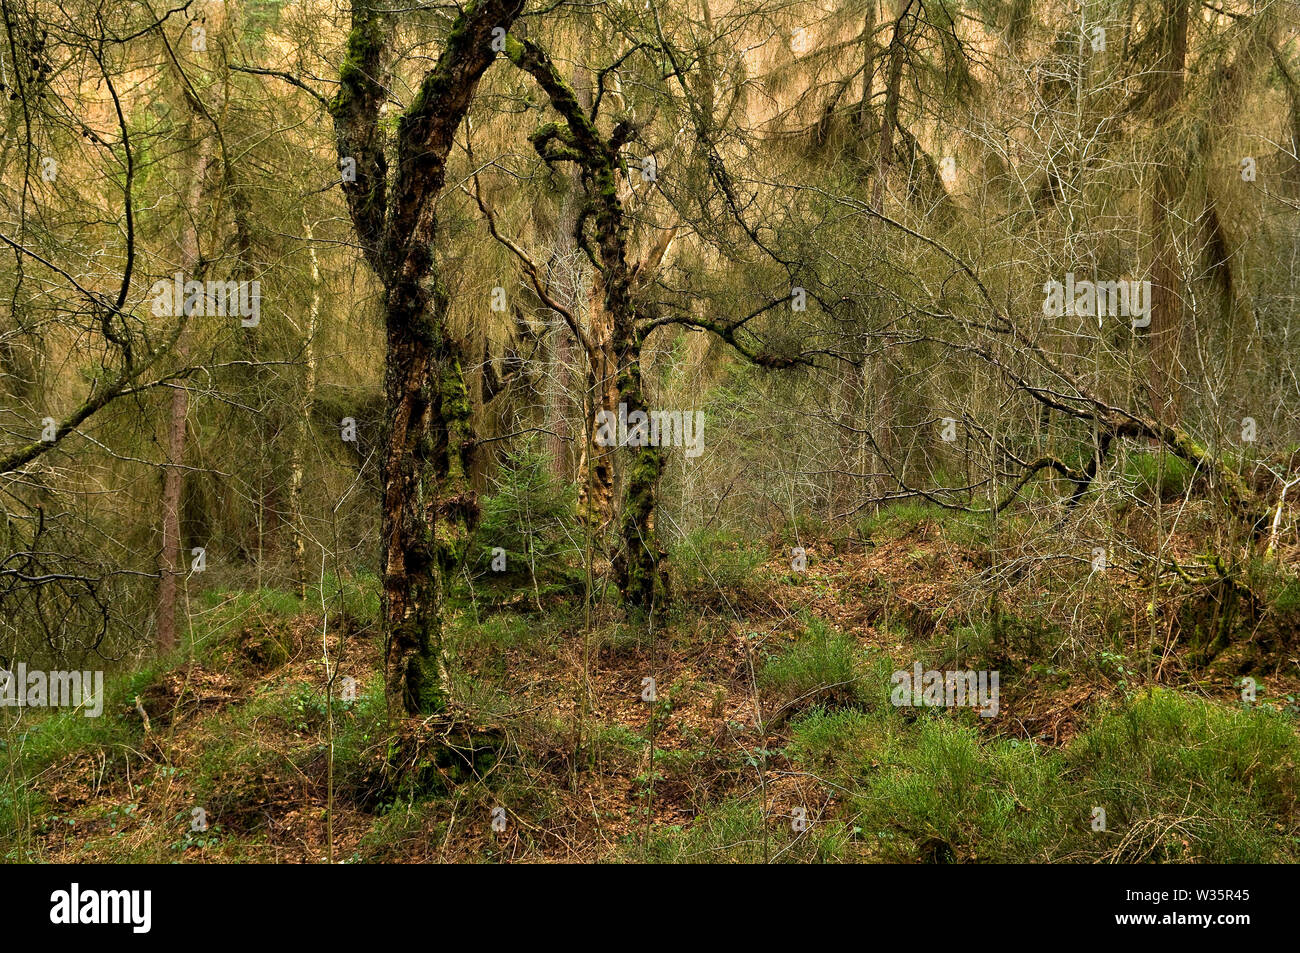 Dense deciduous and evergreen tree growth on the west side of Wyming Brook Gorge on the outskirts of Sheffield, South Yorkshire. Stock Photo